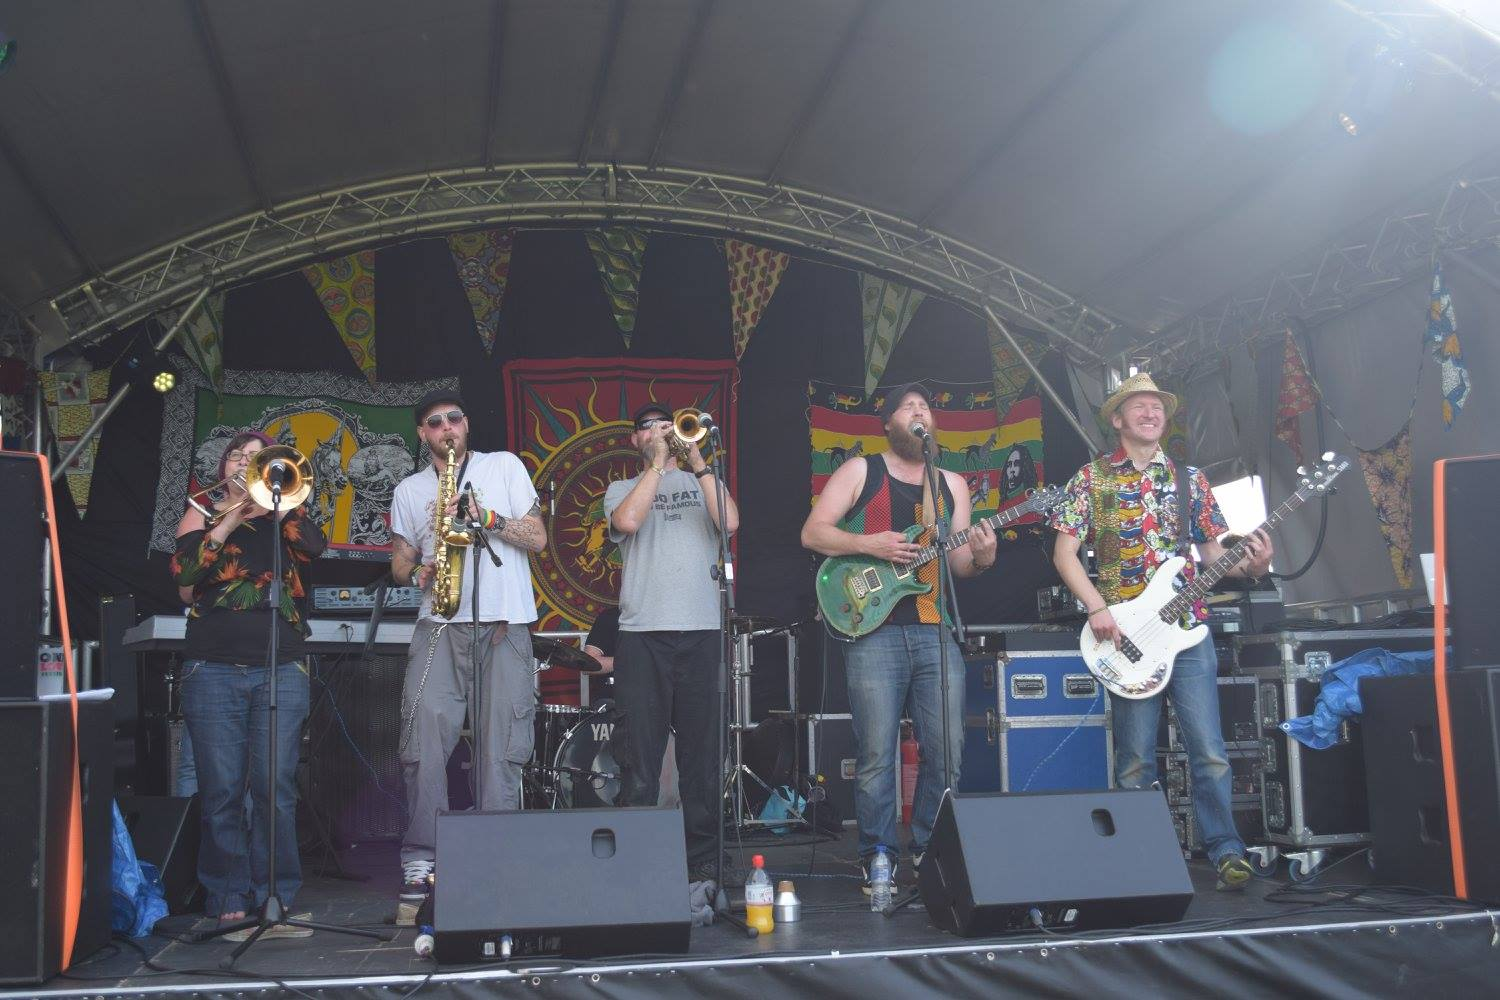 Photograph of easydread rockin' out at One Love Festival.